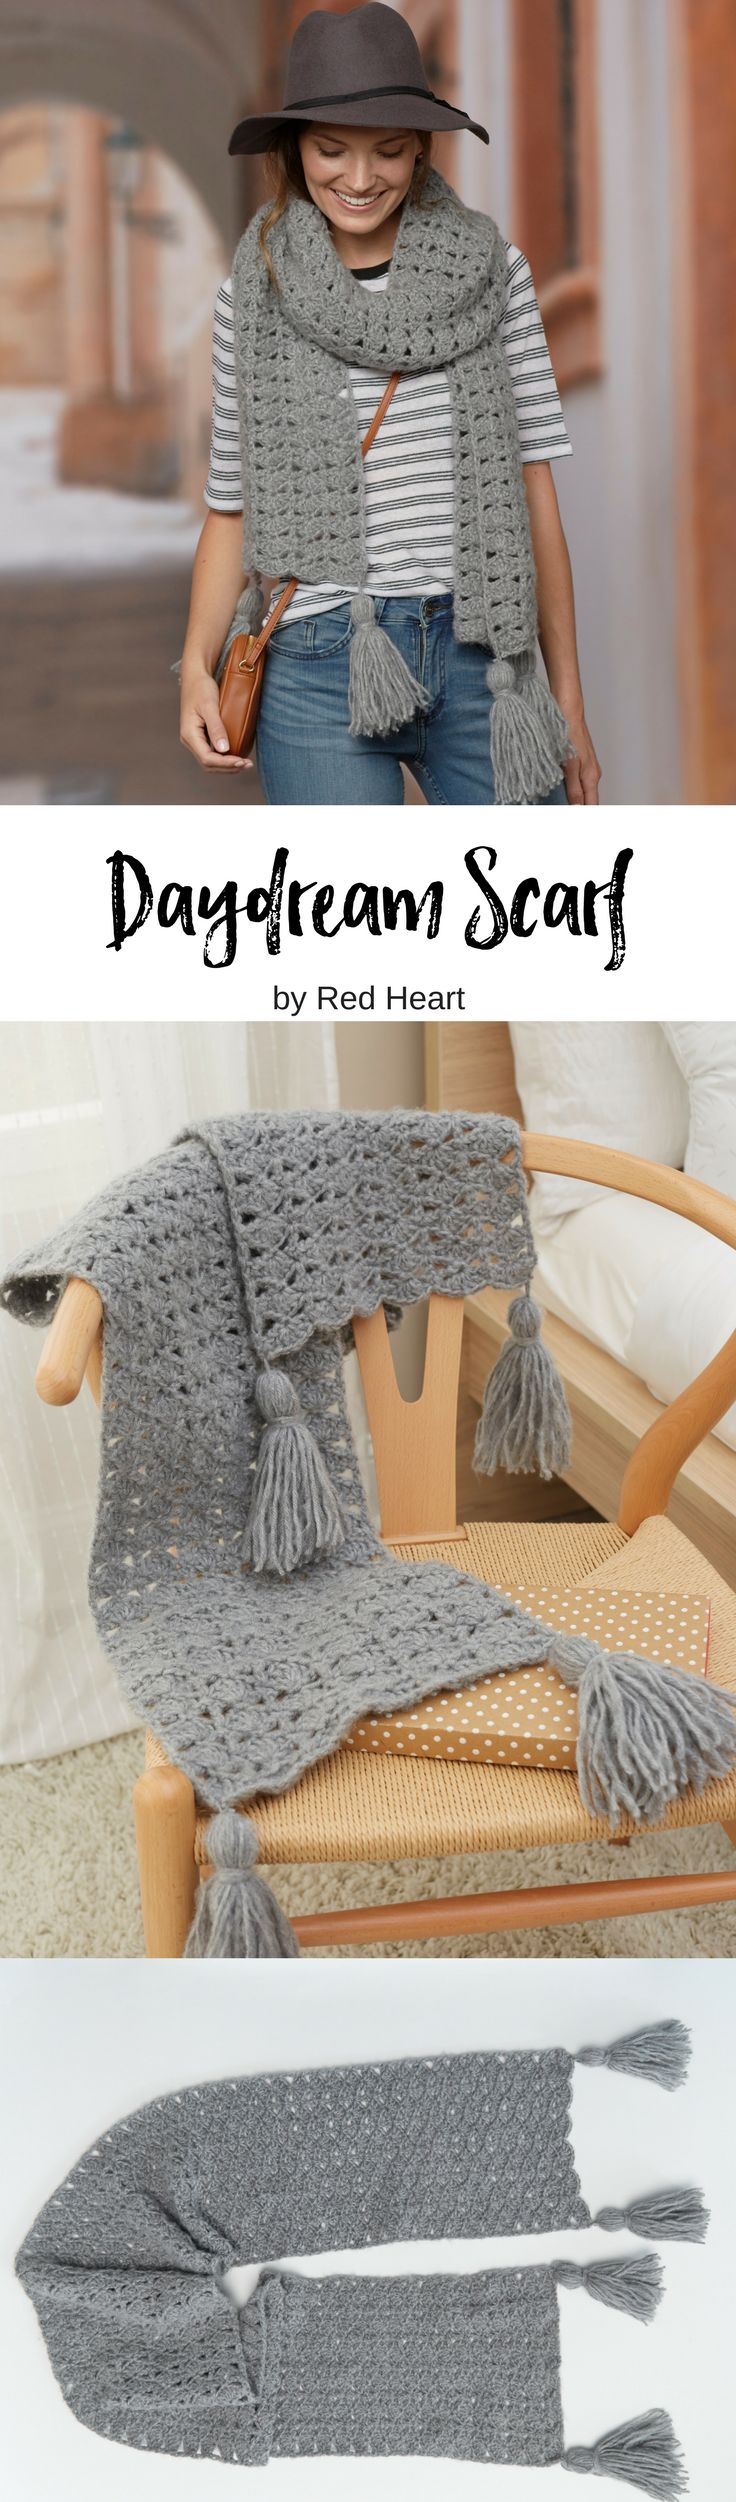 Daydream Scarf crocheted in Dreamy. This brushed yarn is so nice to wear and feels just as right whether you dress it up or dress it casual. Cluster stitches work up quickly so you can make it and wear it (or give it) in little time.